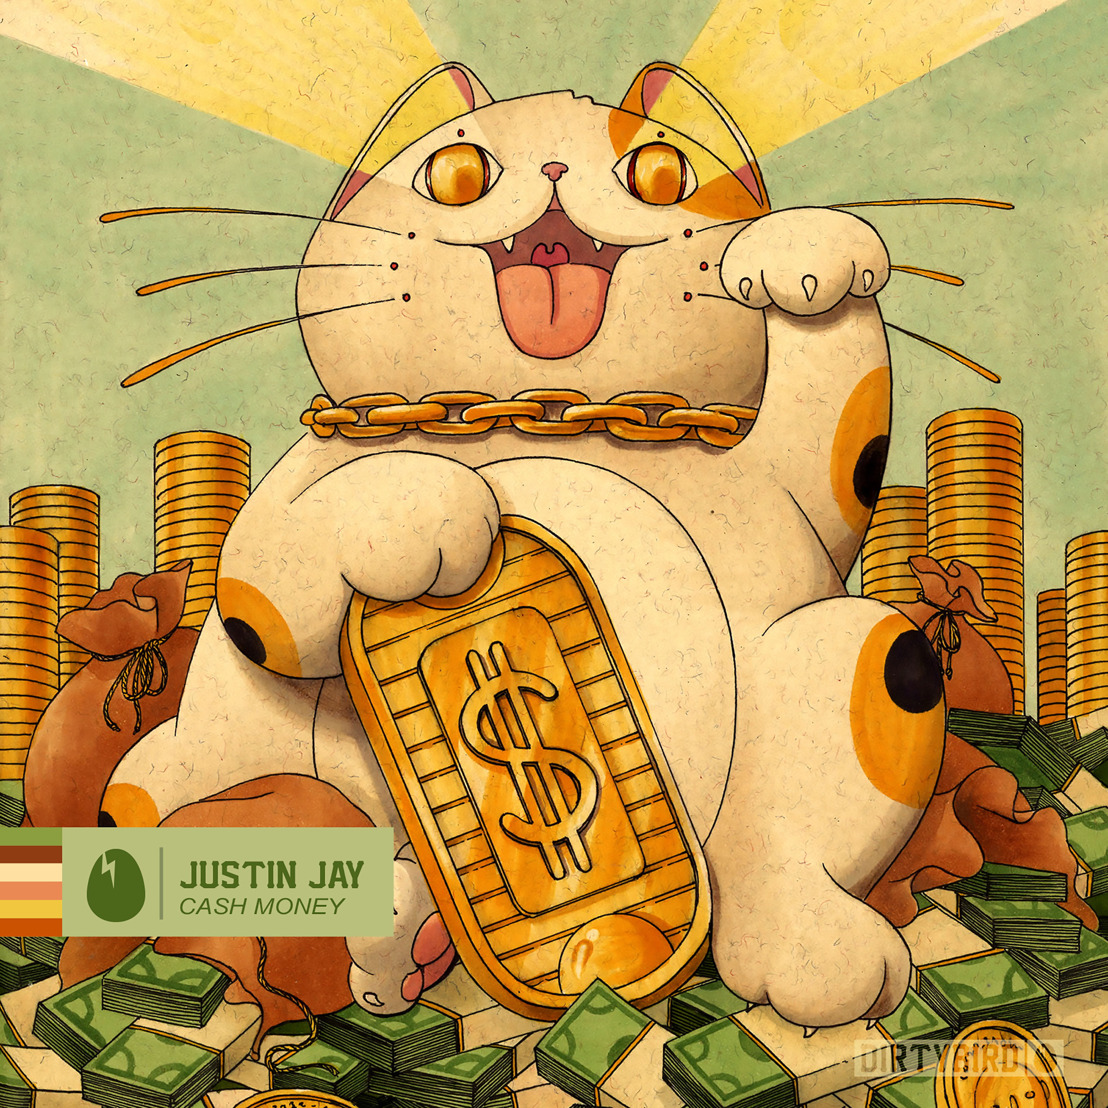 Justin Jay Returns to DIRTYBIRD with Cash Money EP + Tour